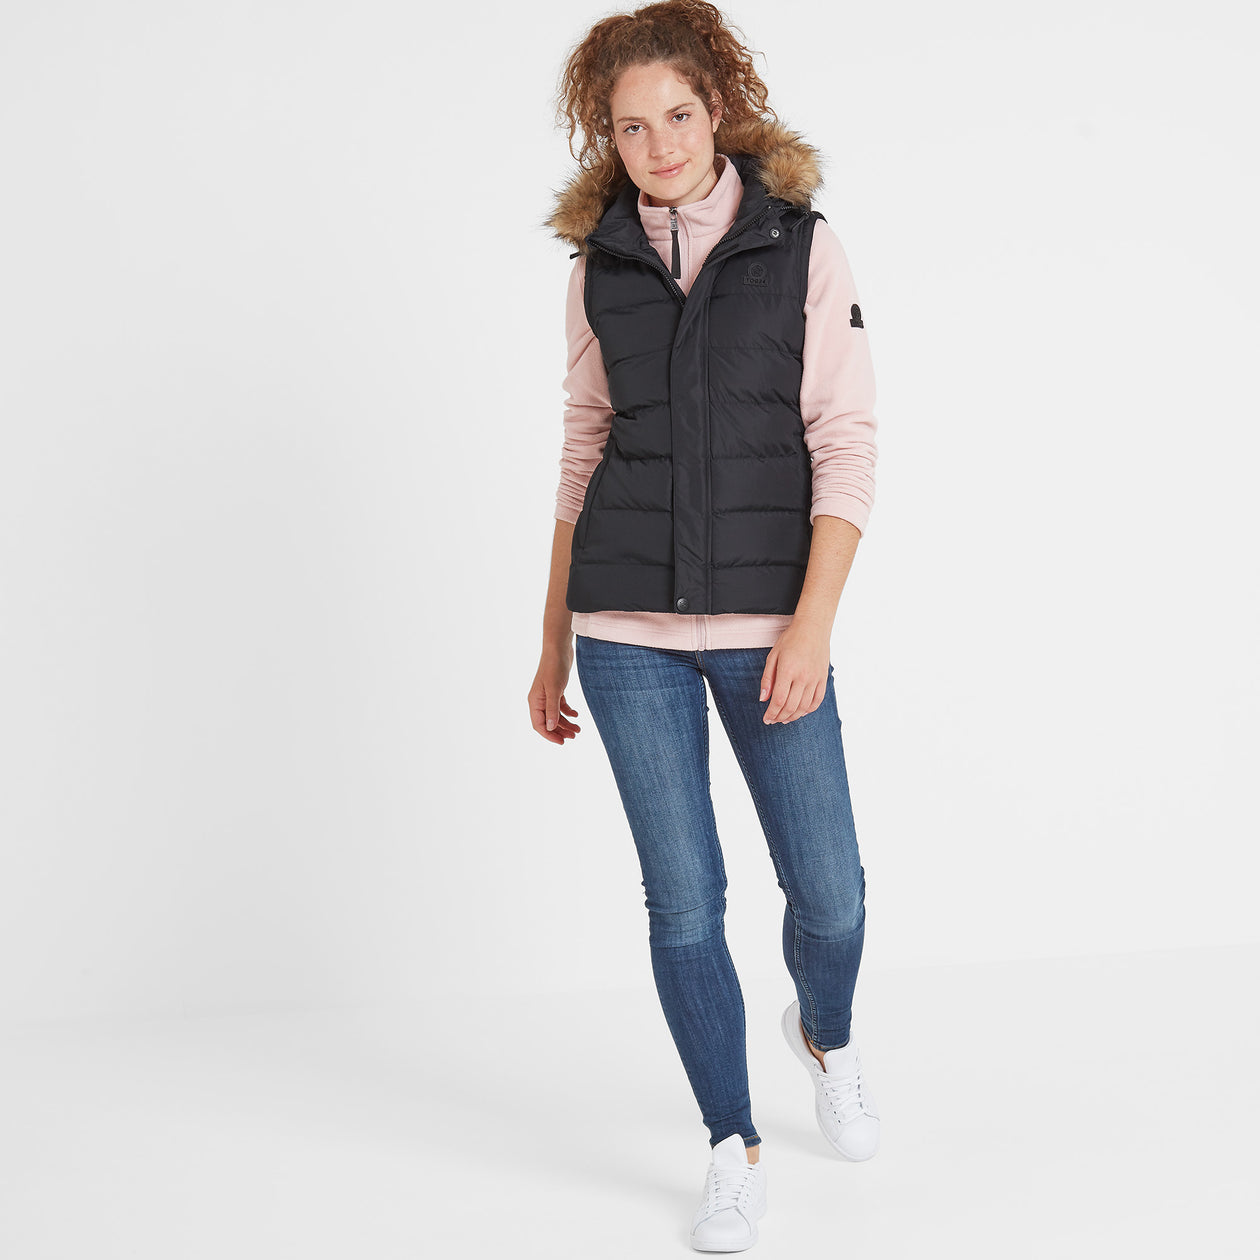 Yeadon Womens Insulated Gilet - Black image 4